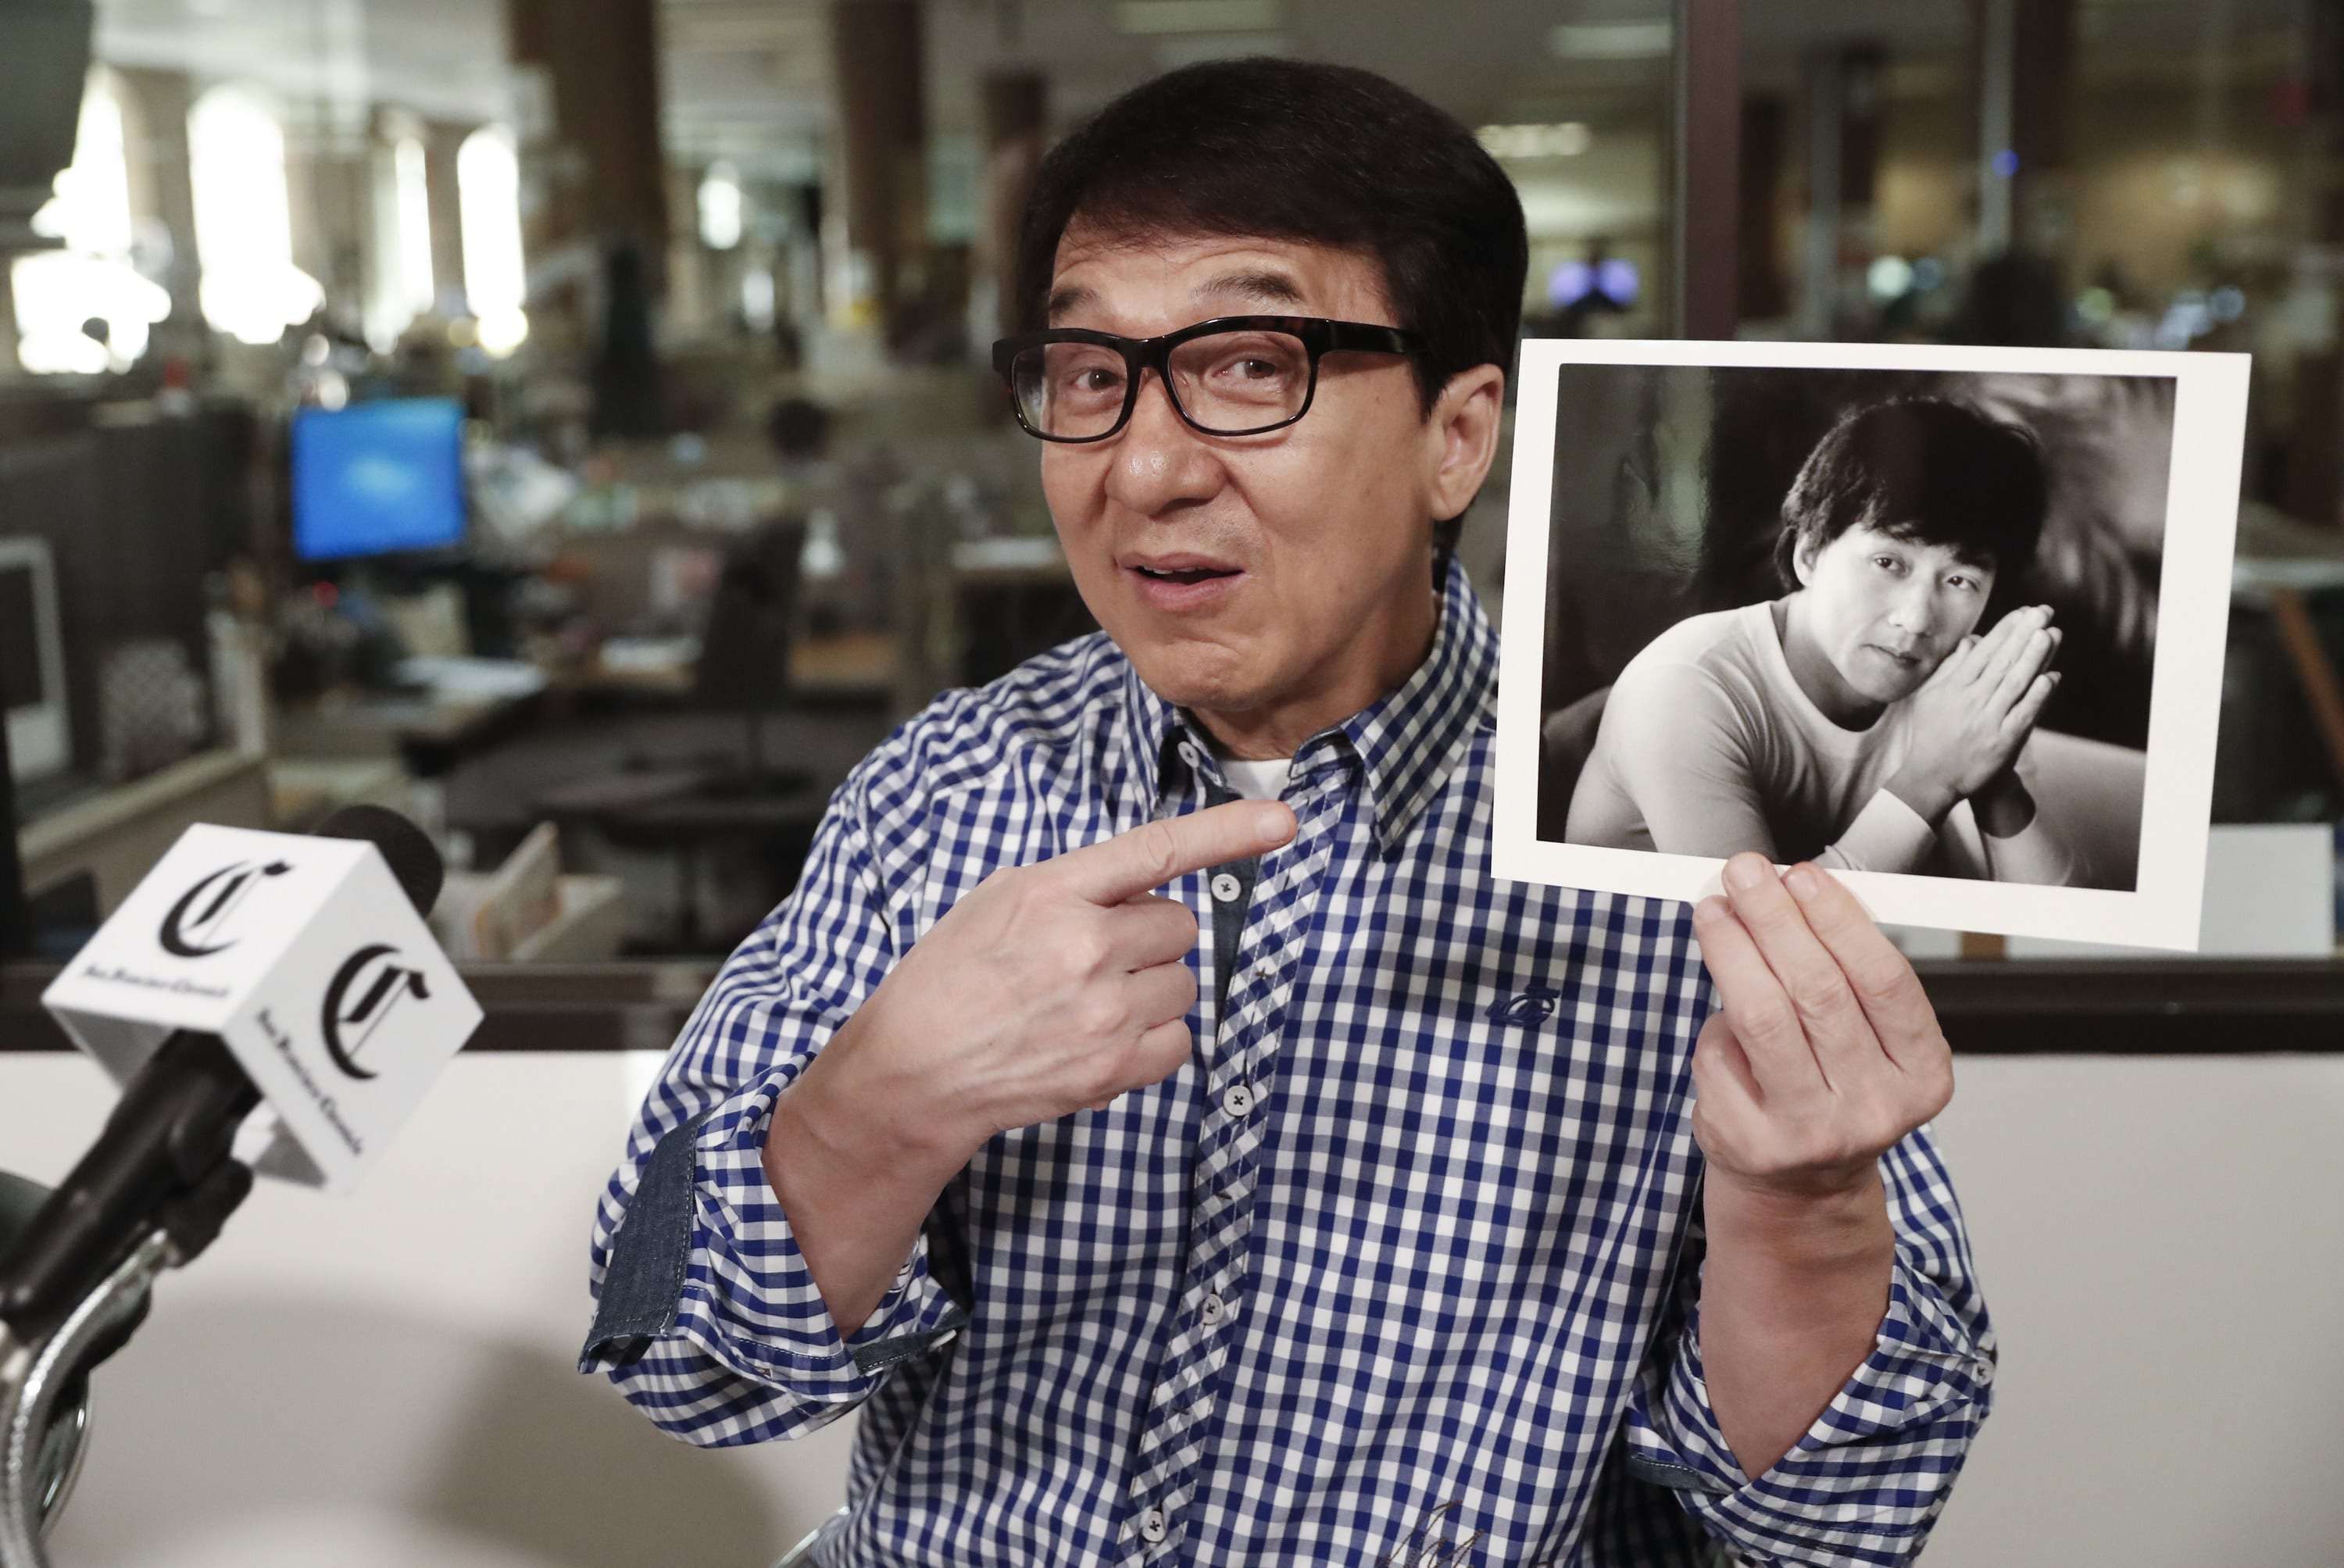 A man pointing to a picture he his holding in his other hand